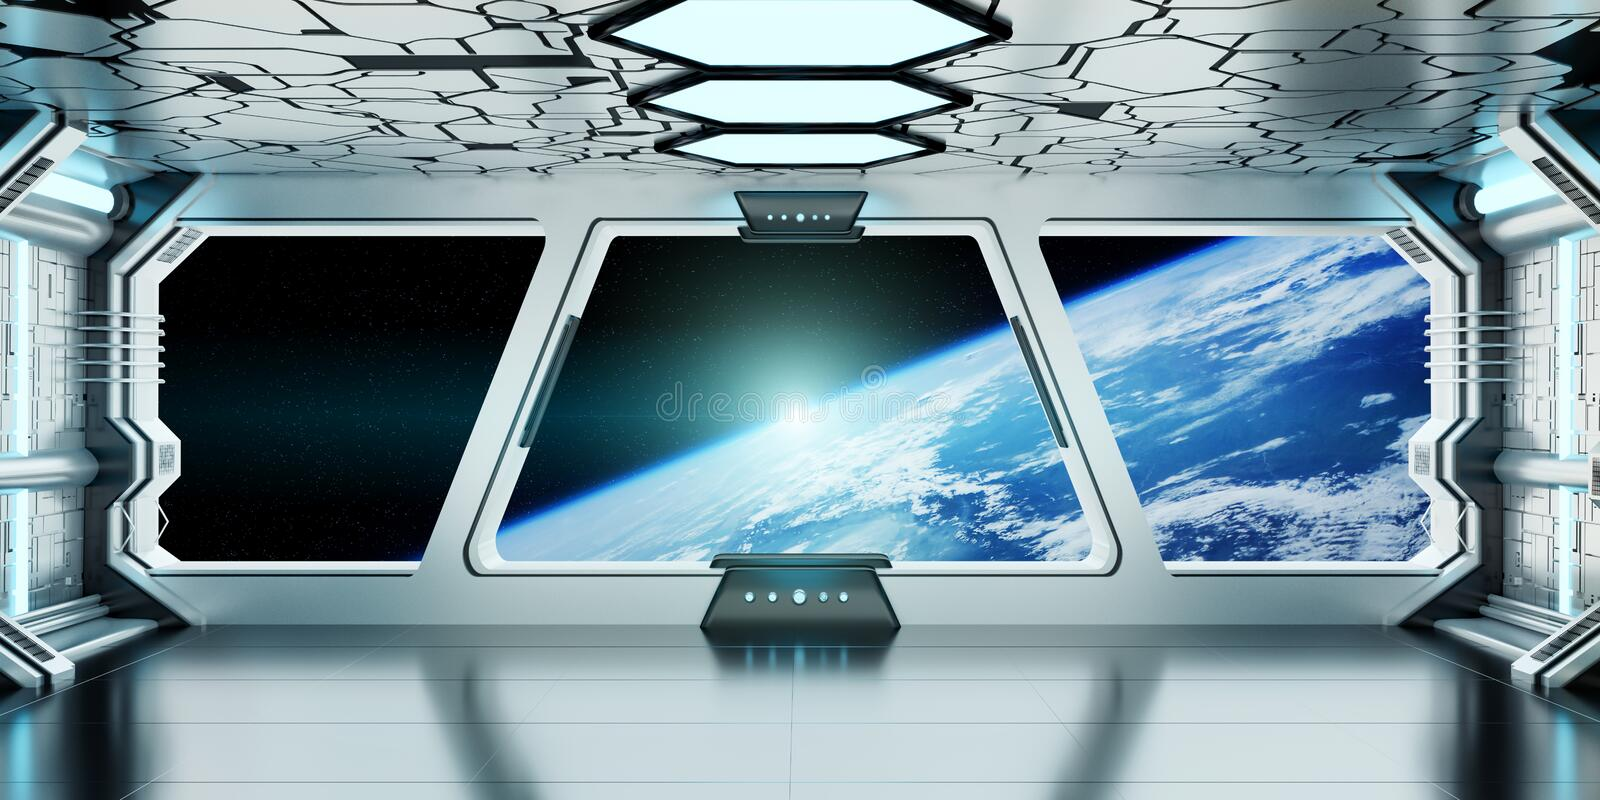 Spaceship interior with view on the planet Earth 3D rendering elements of this image furnished by NASA stock illustration